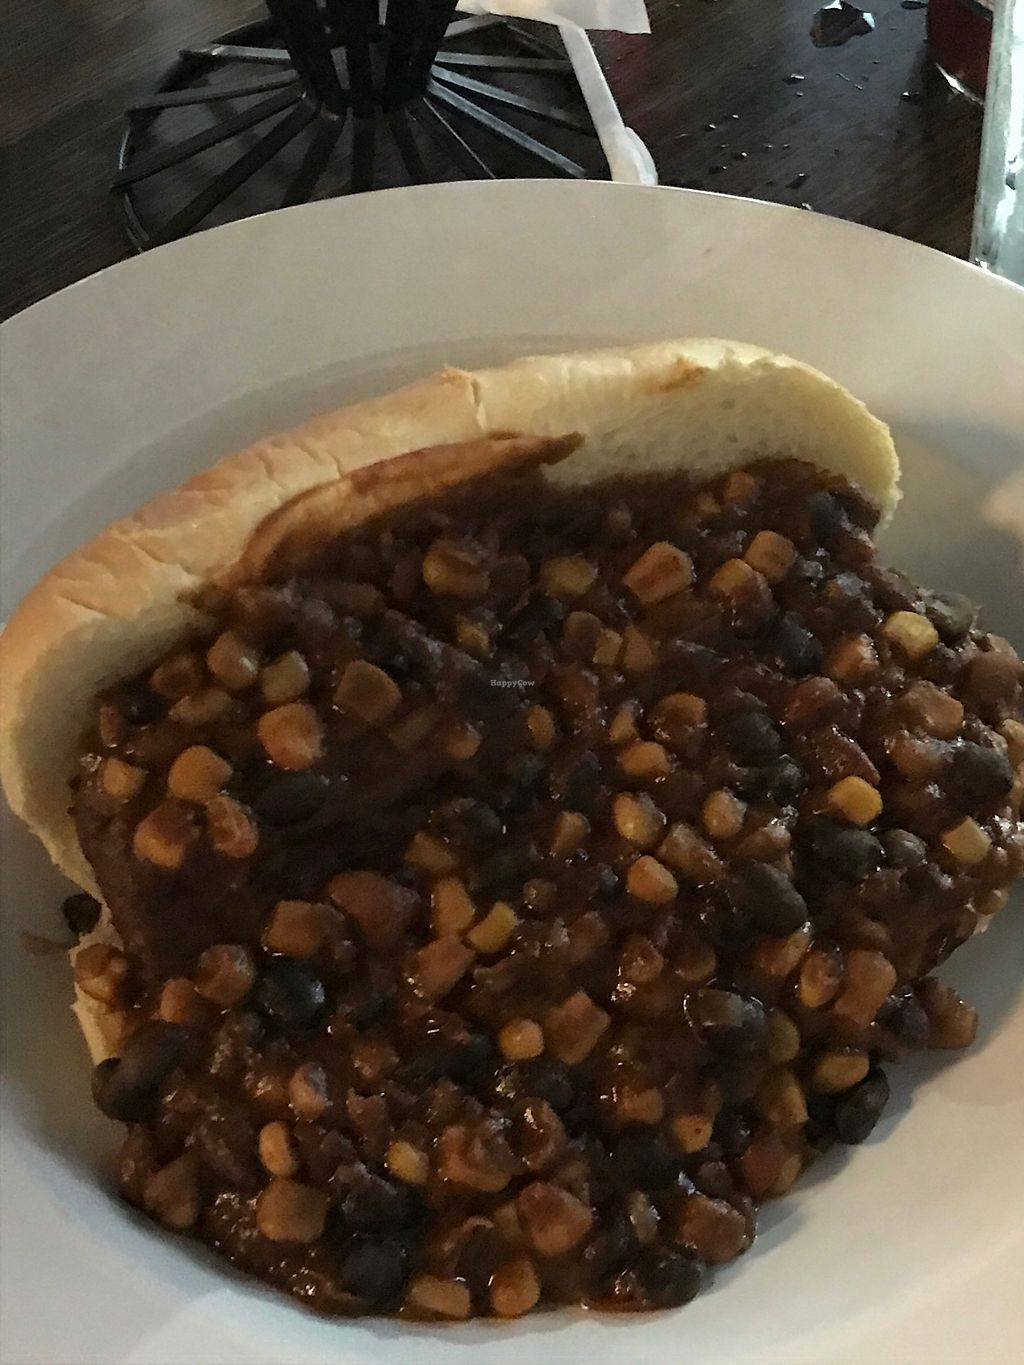 """Photo of Instant Karma Hot Dogs  by <a href=""""/members/profile/itsliangirl896"""">itsliangirl896</a> <br/>carrot dog with vegan chili <br/> July 15, 2017  - <a href='/contact/abuse/image/22096/280691'>Report</a>"""